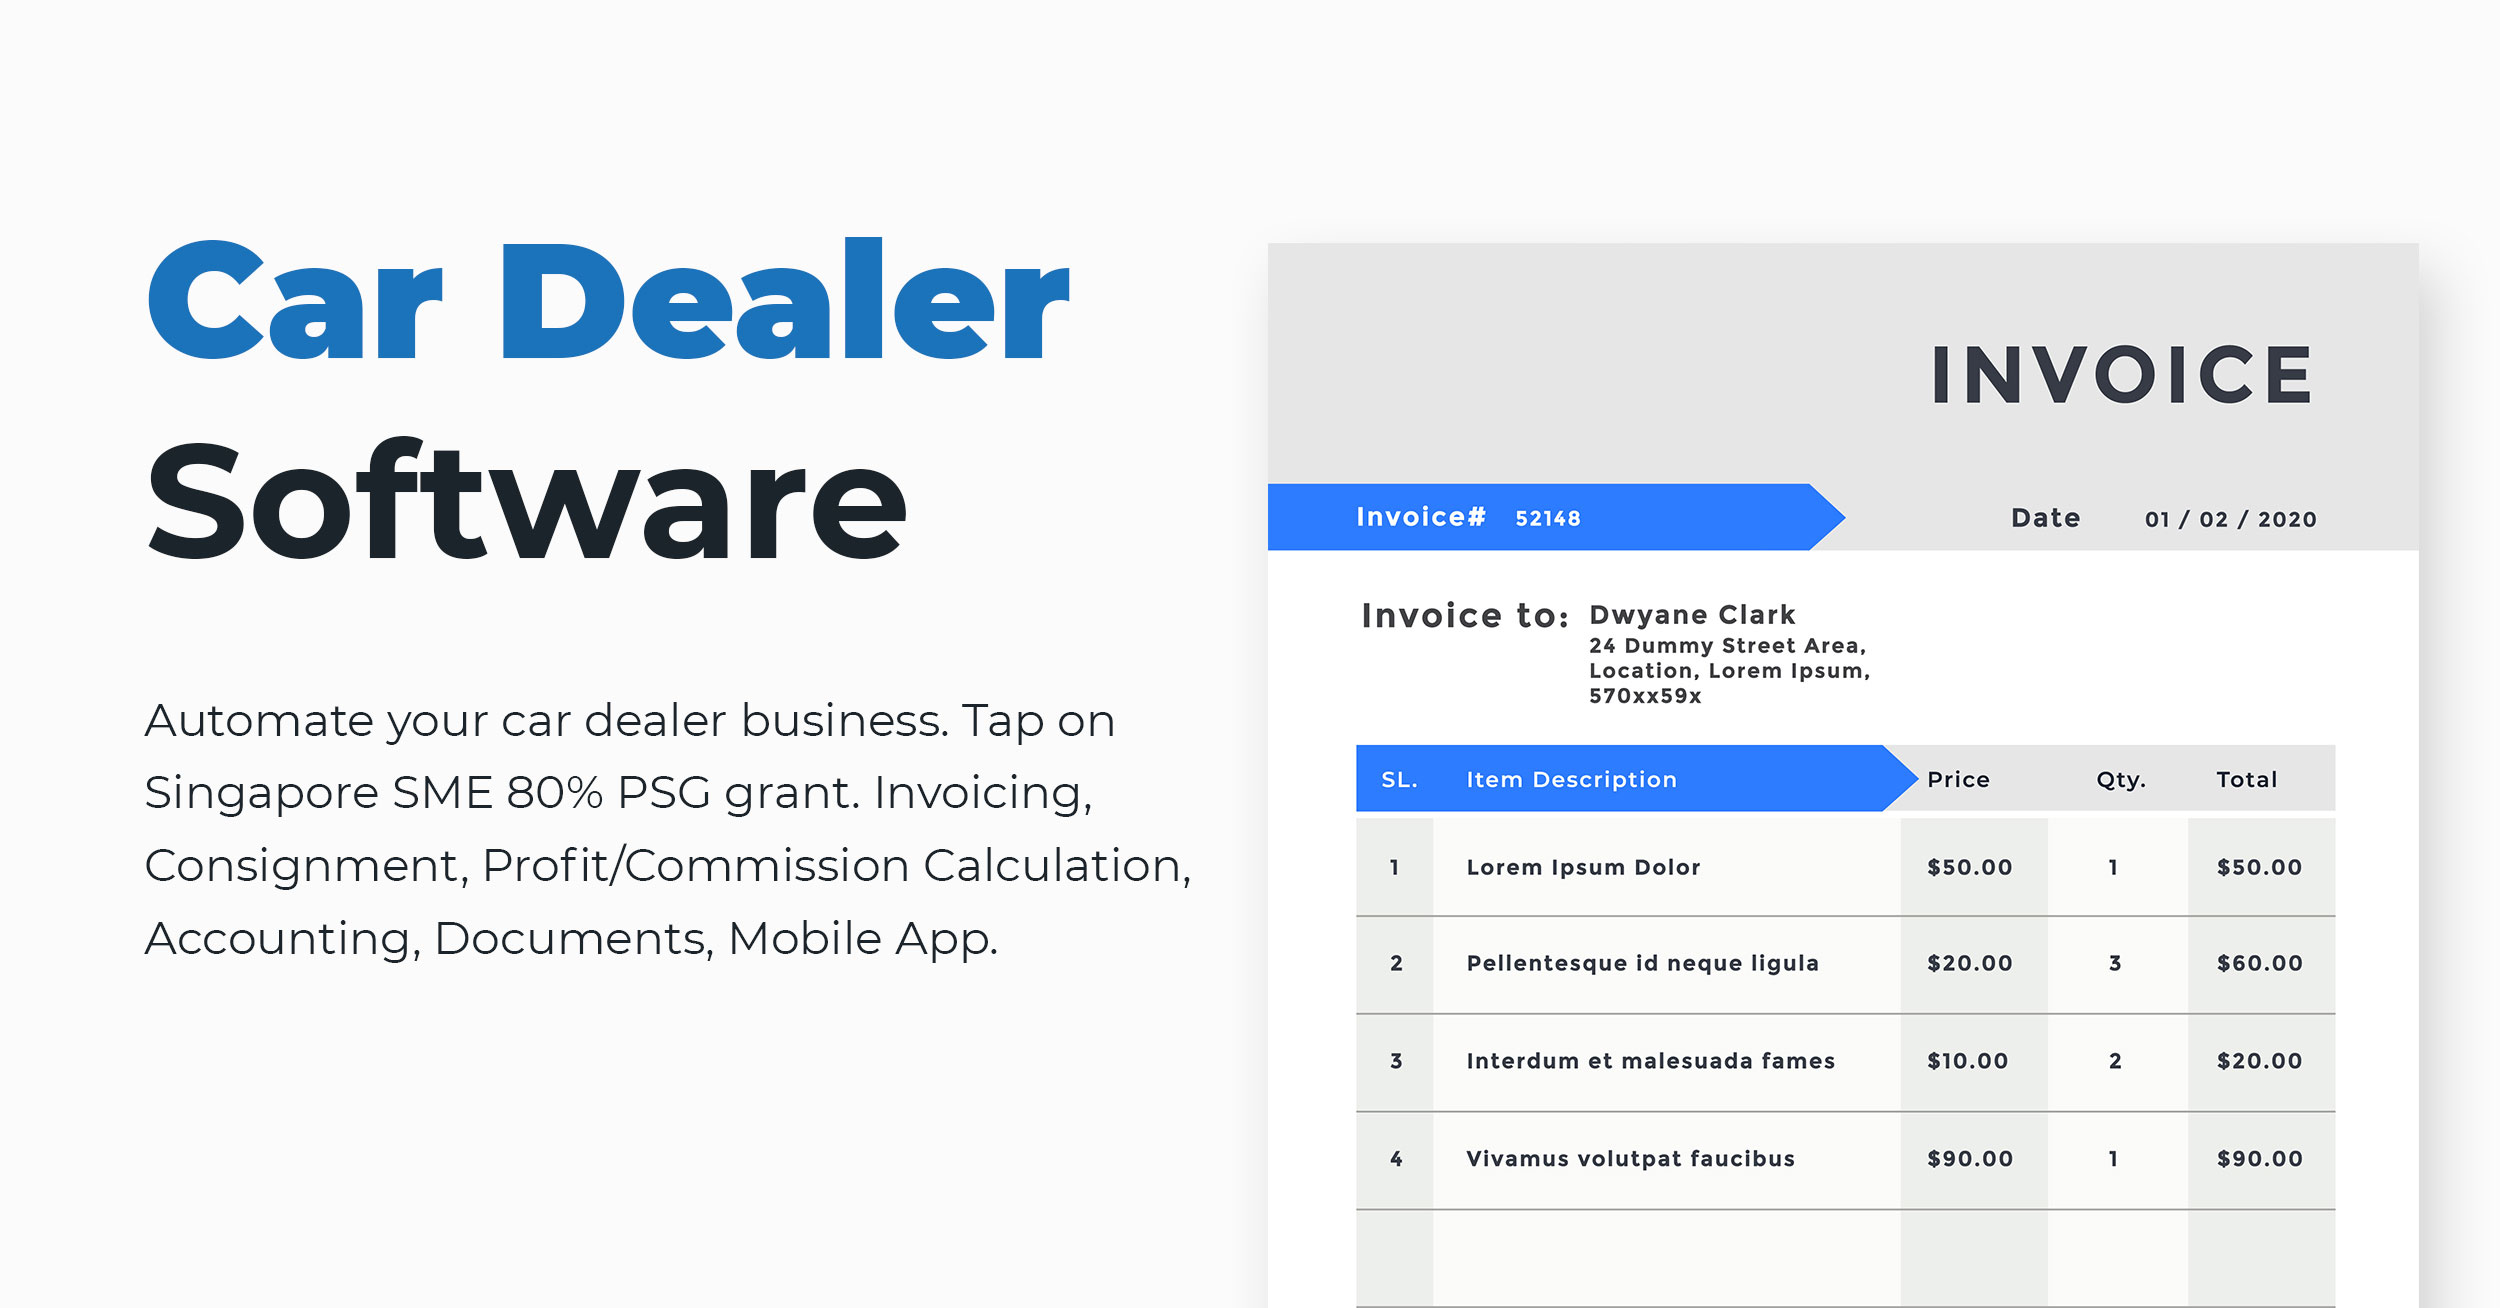 Car Dealer Software 1